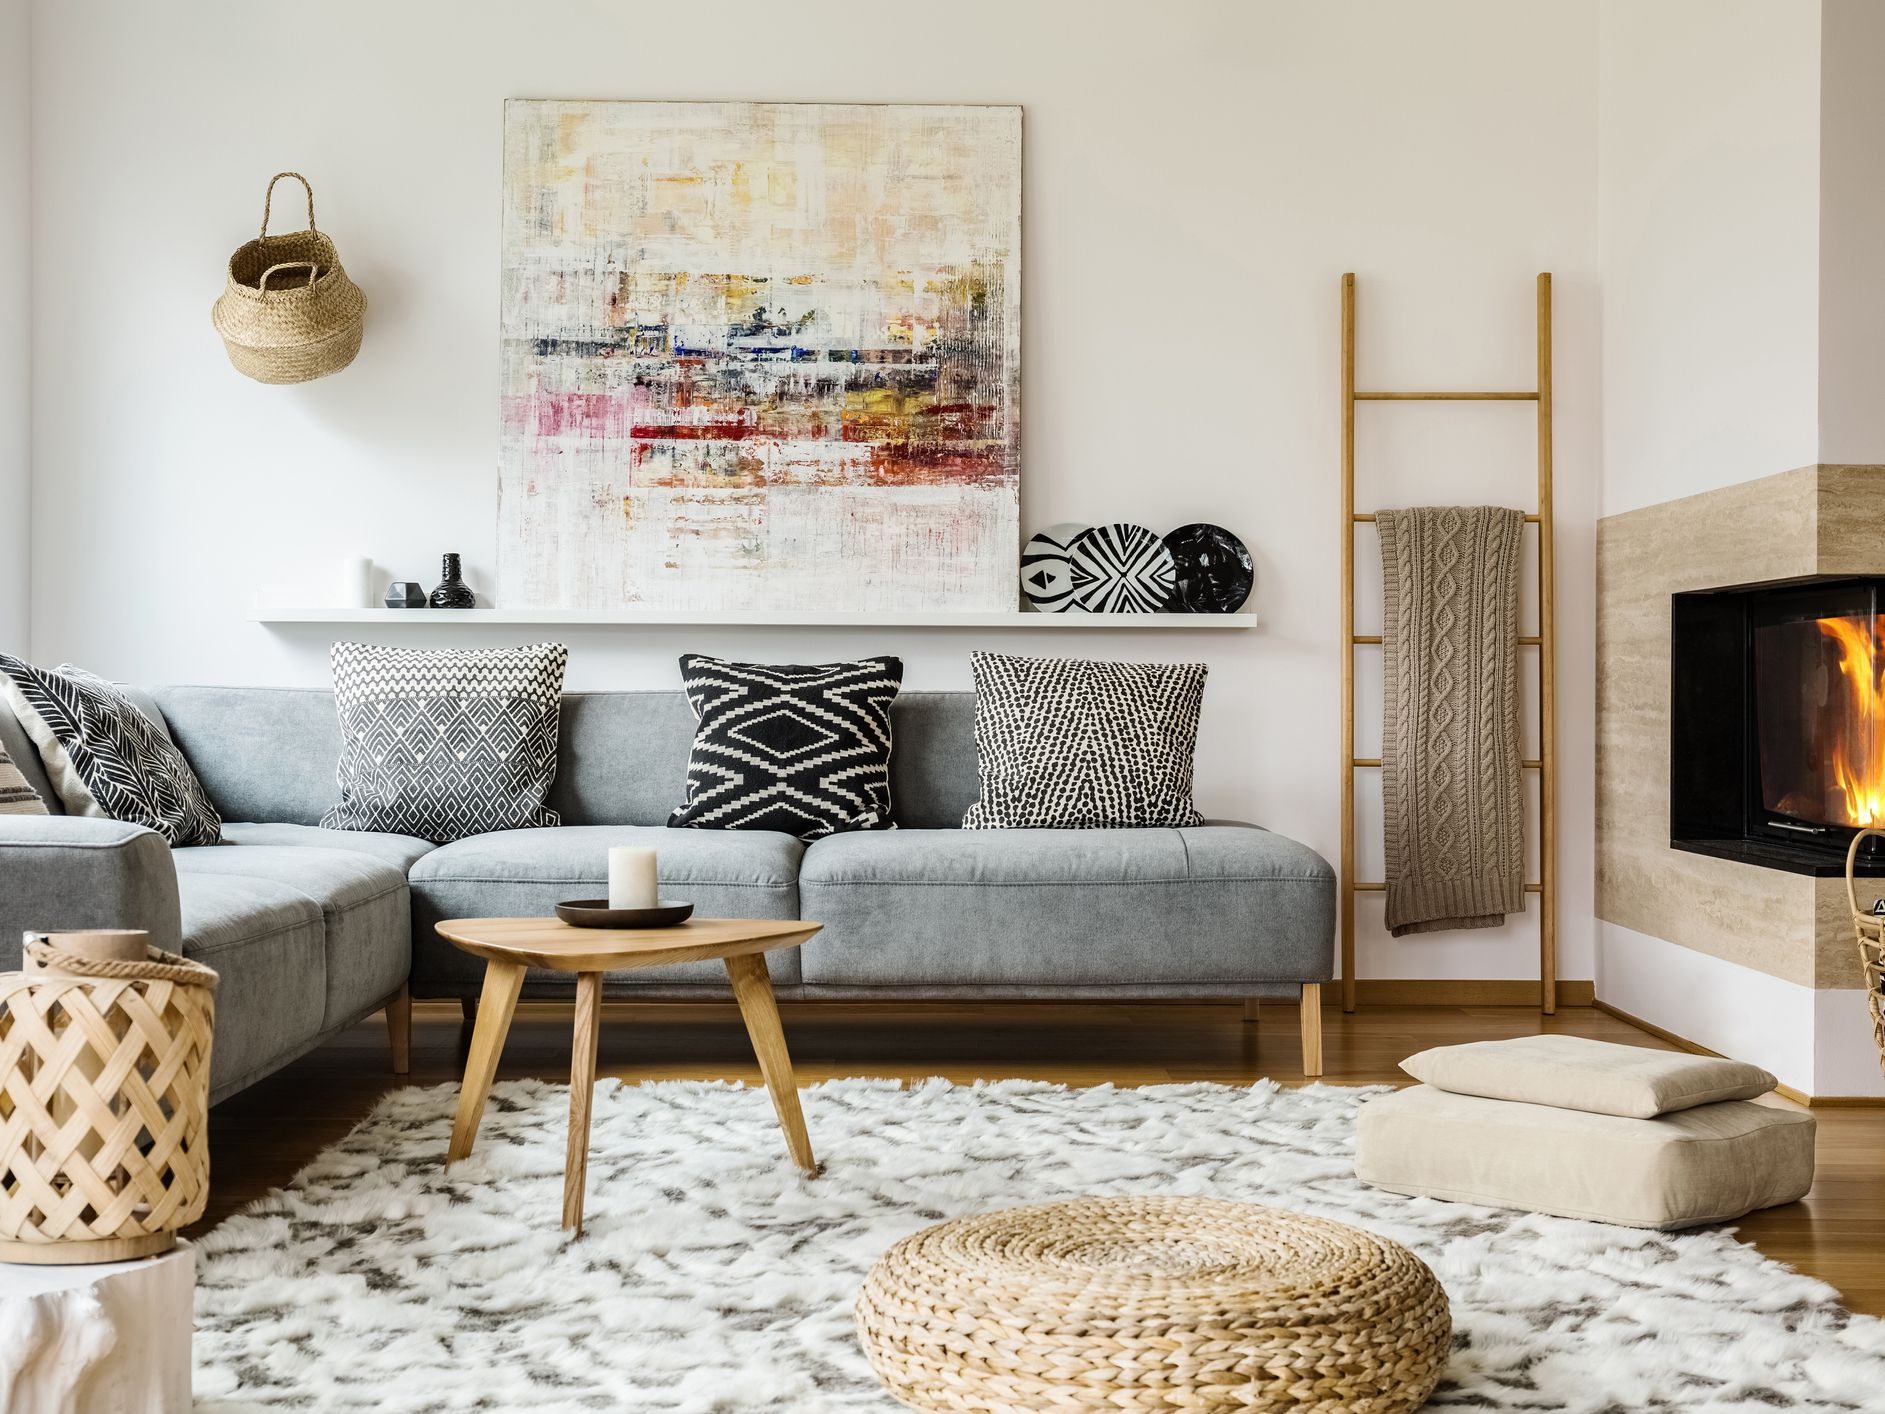 10 Formal Living Room Ideas To Try At Home